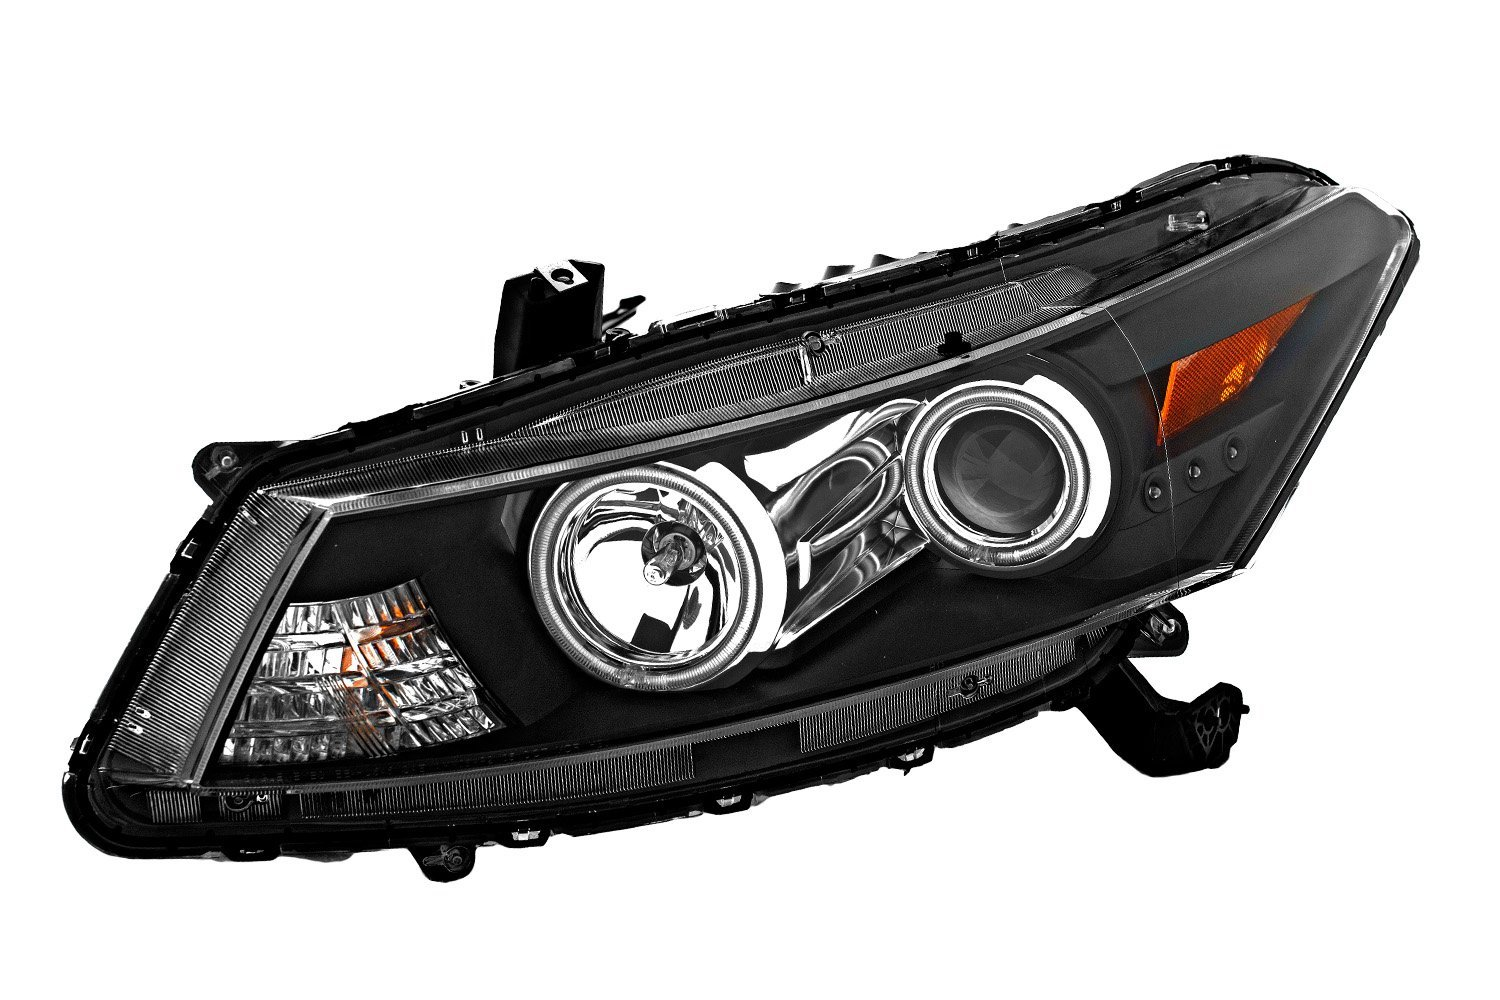 Hid Xenon 08-12 Honda Accord Coupe Ccfl Angel Eye Halo Proiettore Fari - Nero-1498